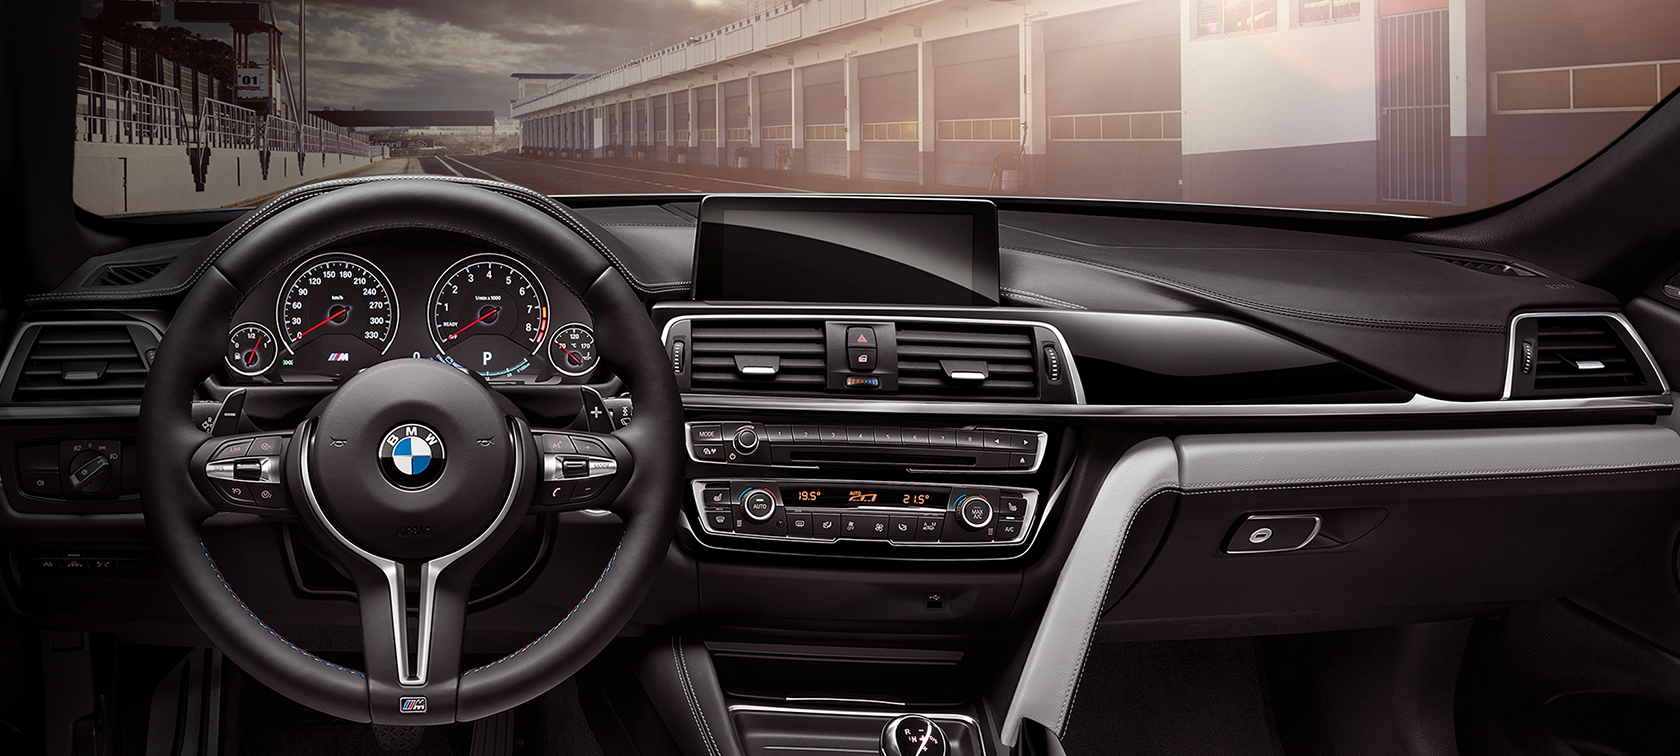 BMW M4 Convertible: detalle de interiores, volante y BMW Connecteddrive